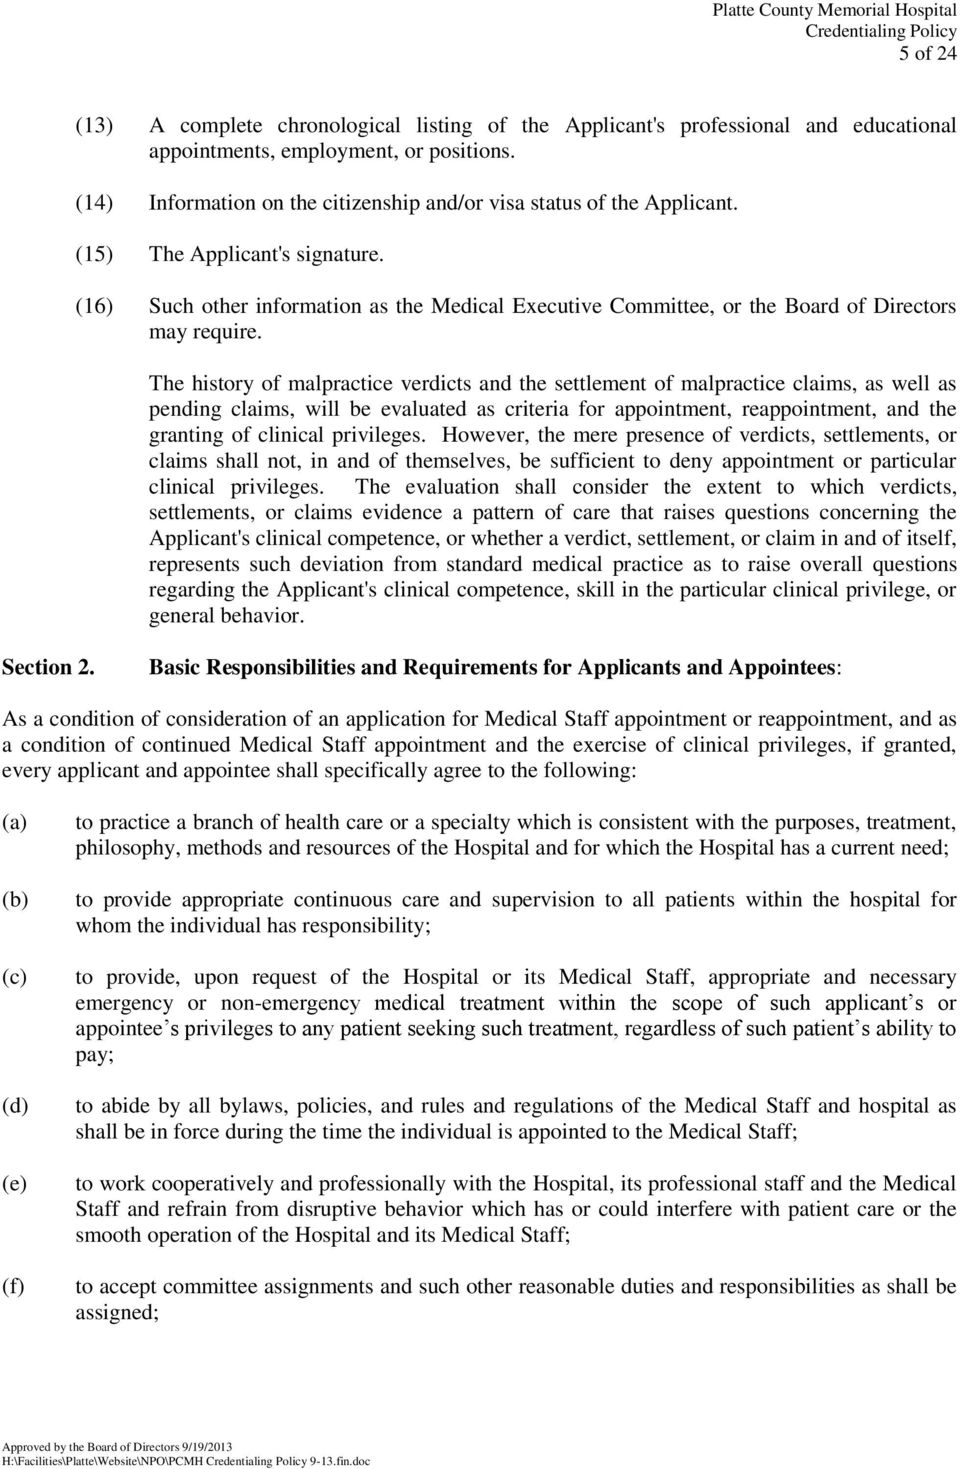 (16) Such other information as the Medical Executive Committee, or the Board of Directors may require.